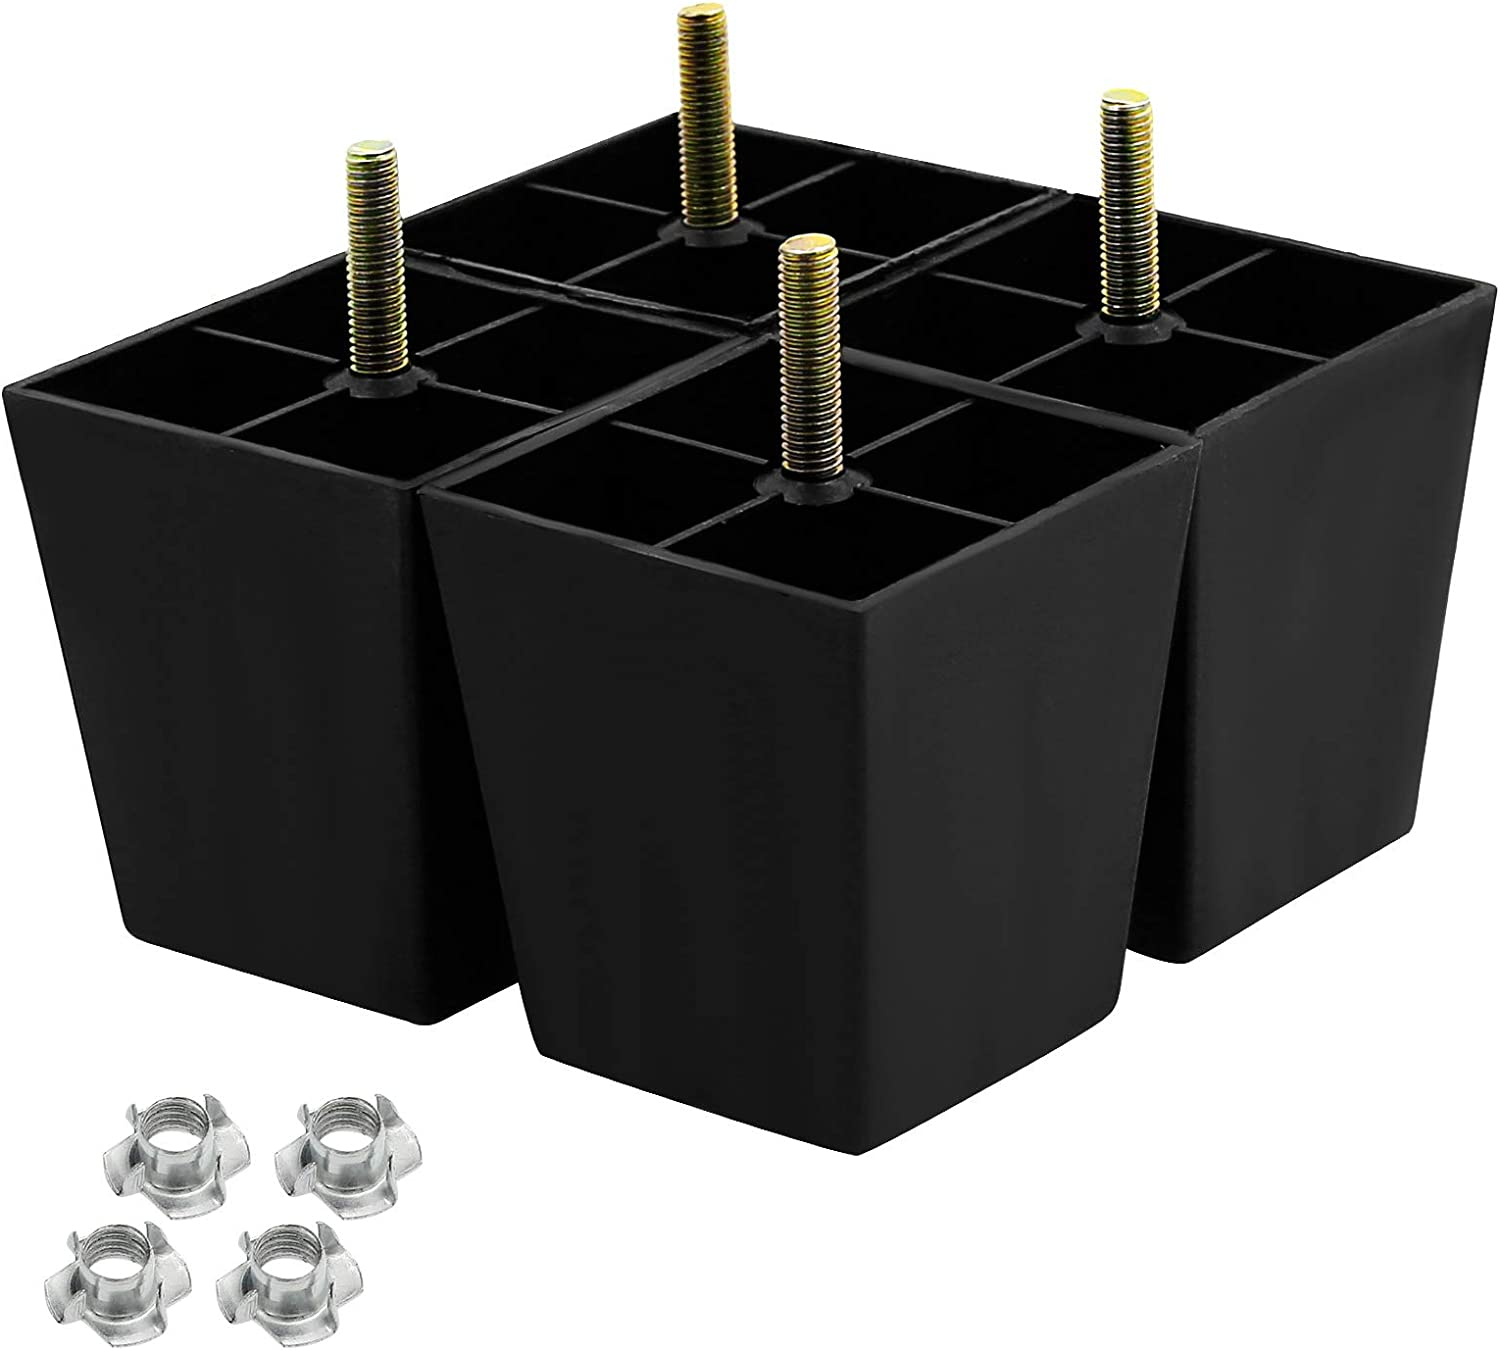 Seimneire 4Pcs 3 Inch Sofa Legs, Plastic Couch Feet Square Furniture Legs with M8 Hanger Bolts for Sofa Dresser Cabinet Chair Bed Coffee Table